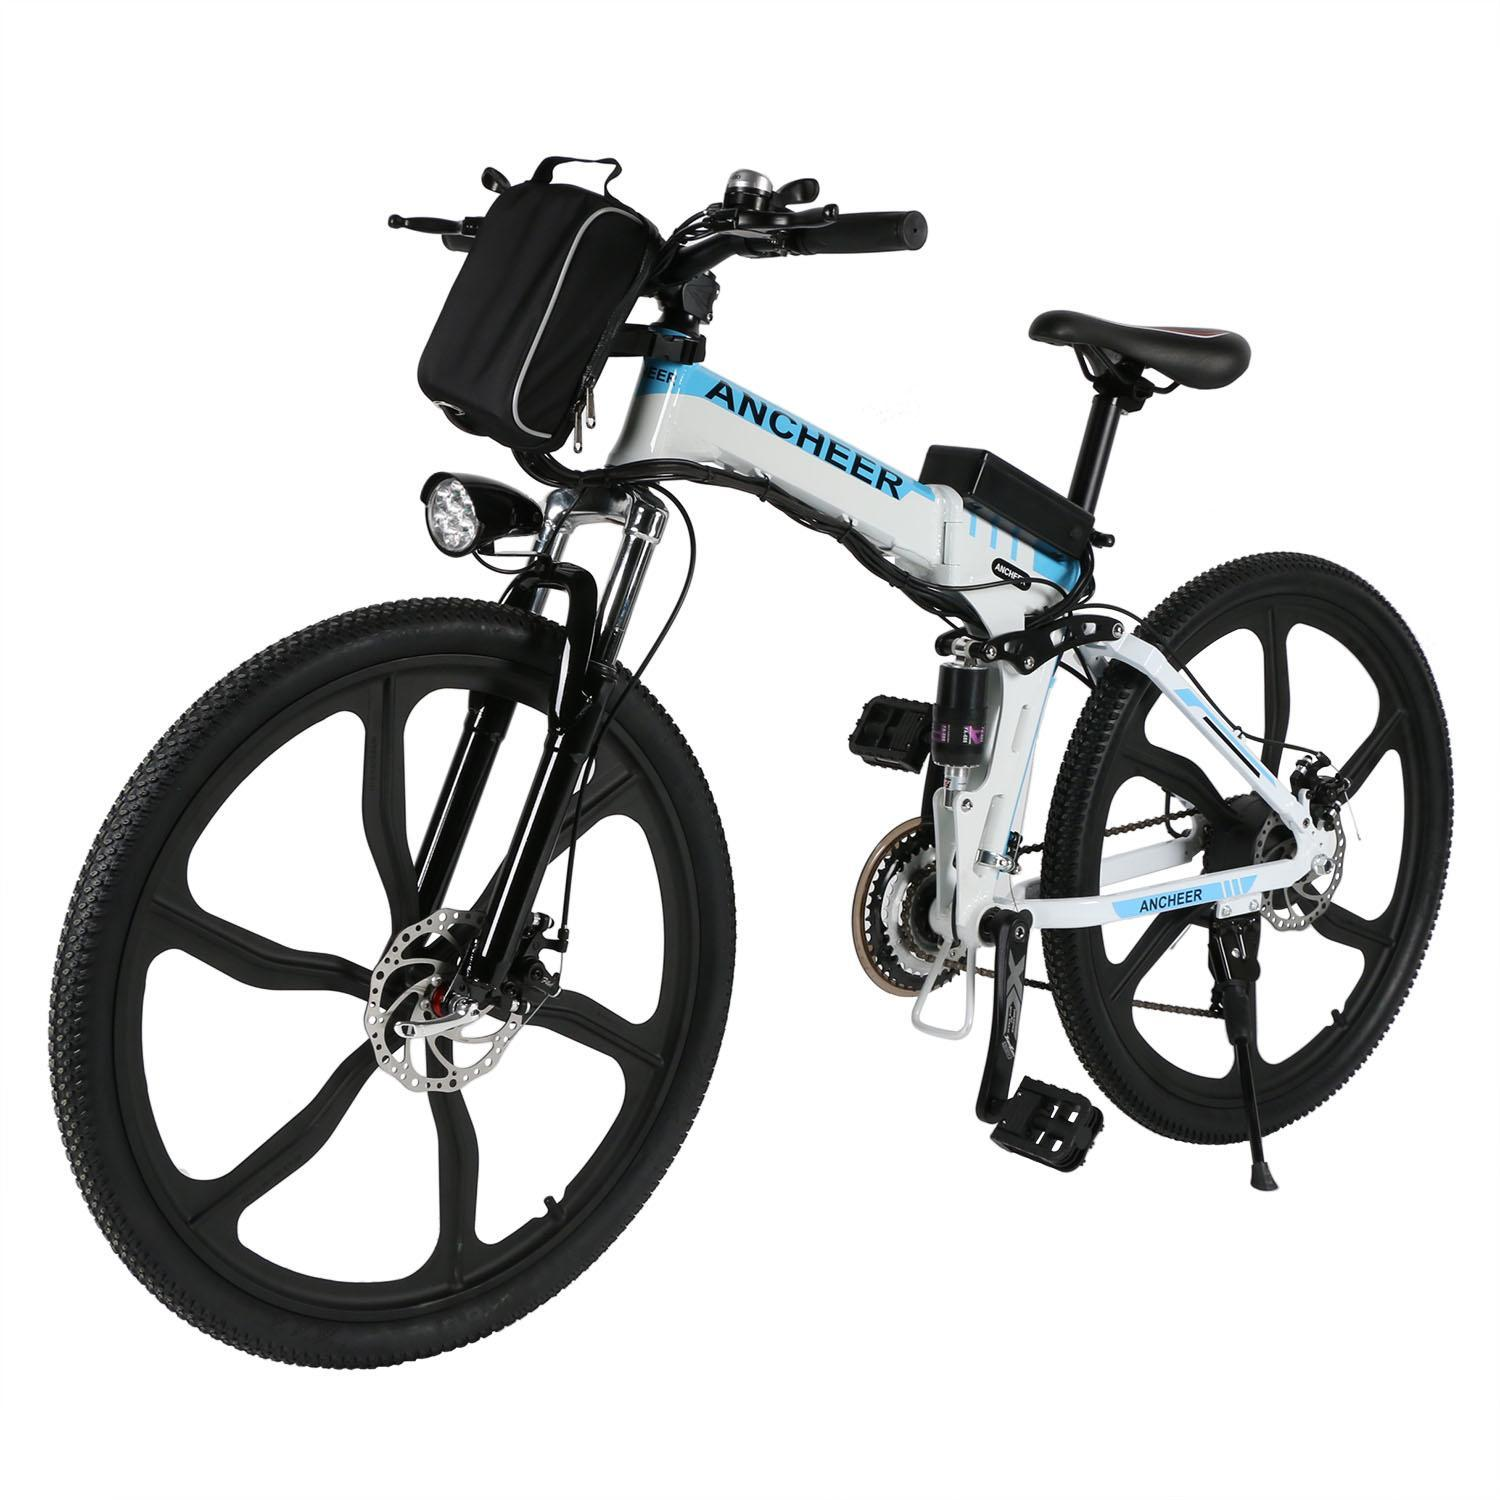 "Ancheer 26"" Electric Bike Foldable Men's Mountain Bike, Black"